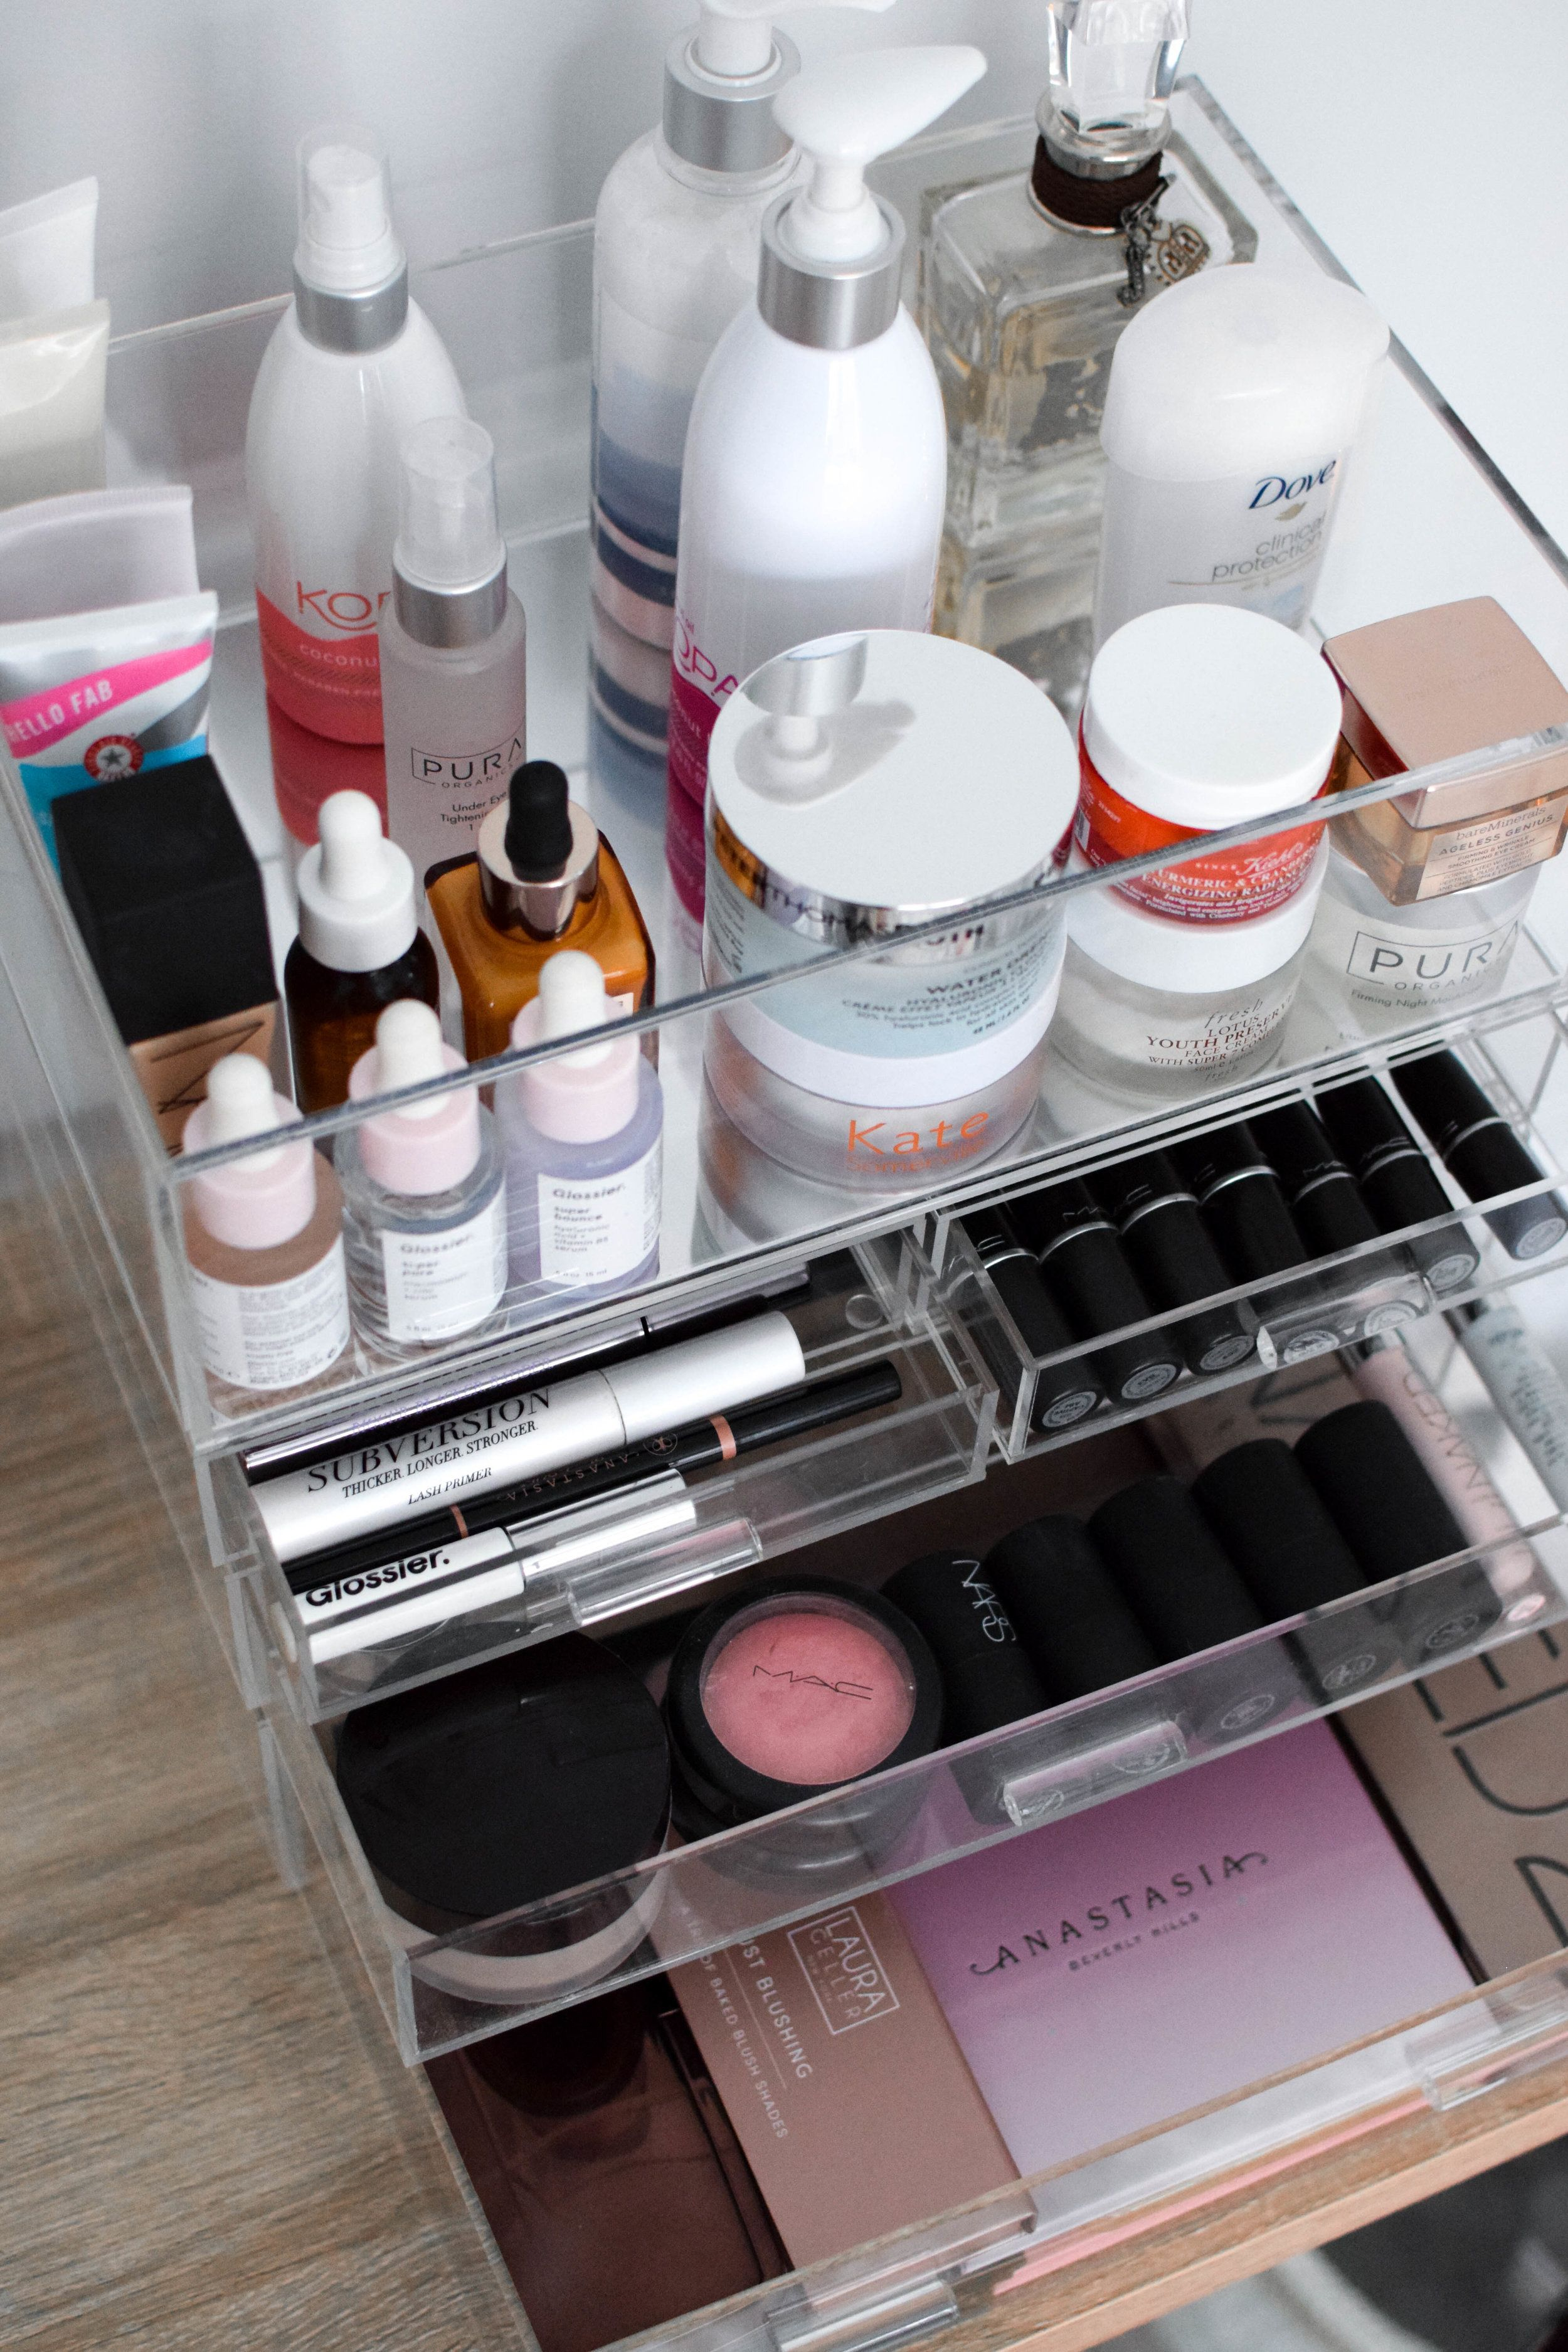 How I Store & Organize My Makeup Products Acrylic makeup